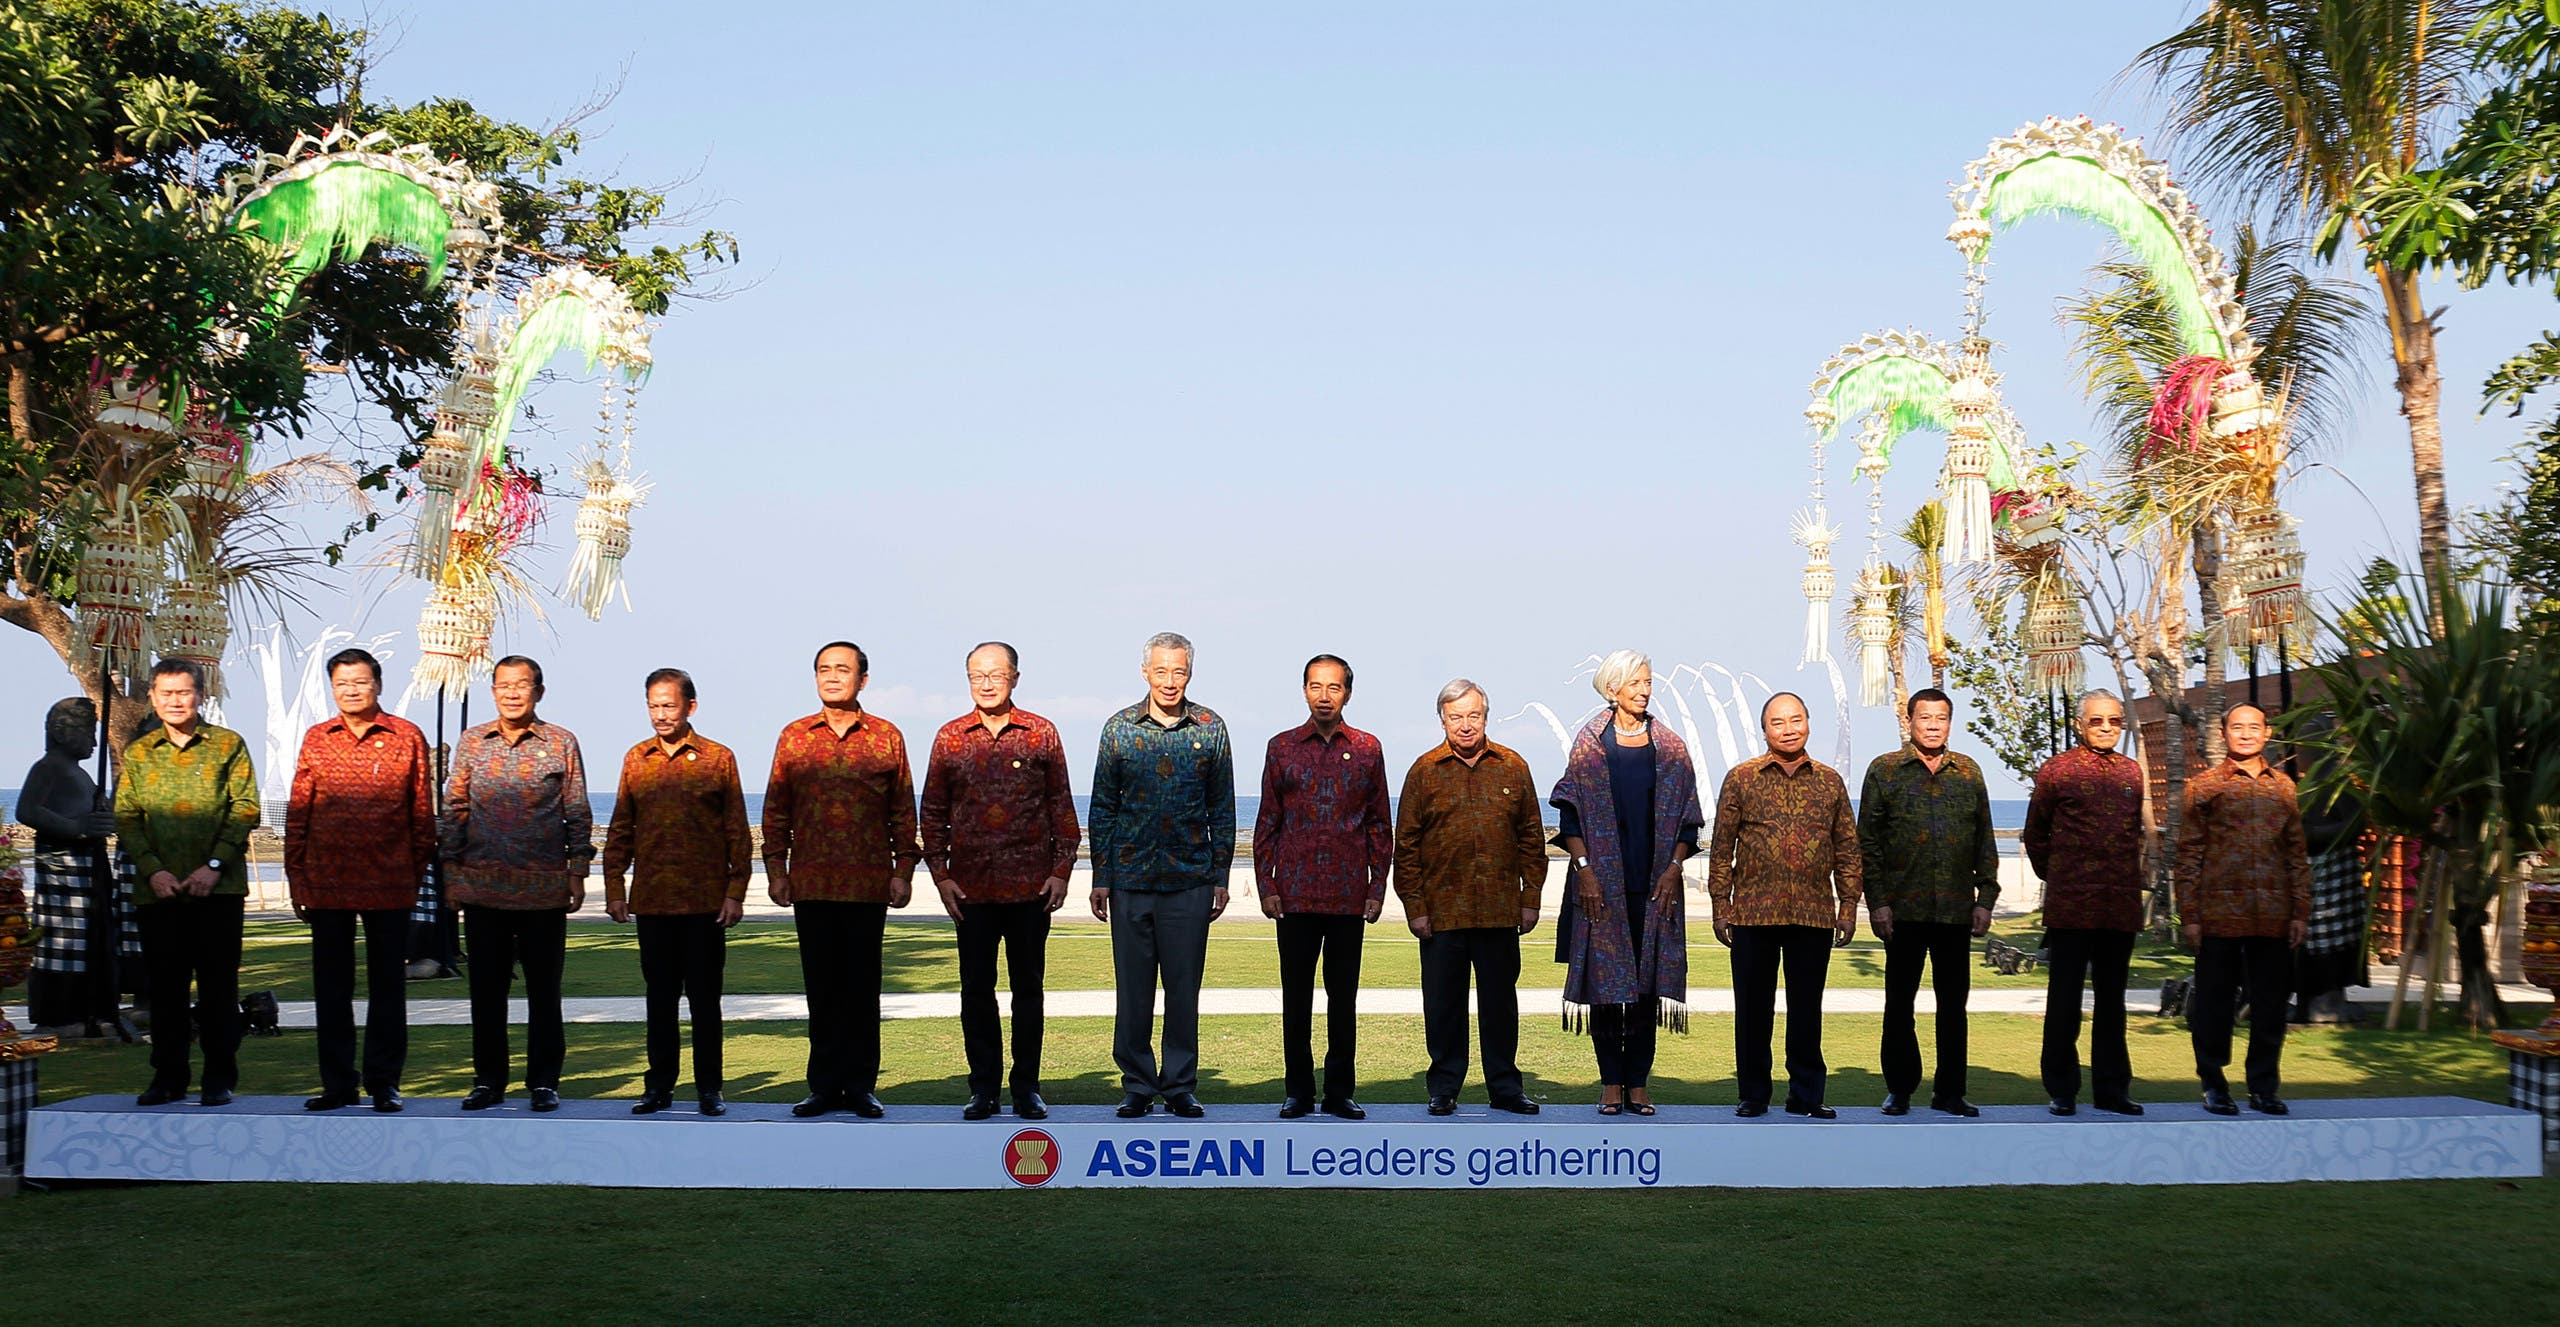 Southeast Asian leaders pose for a family photo for the ASEAN Leaders Gathering at the IMF and World Bank annual meetings in Bali on October 11, 2018. (AFP)